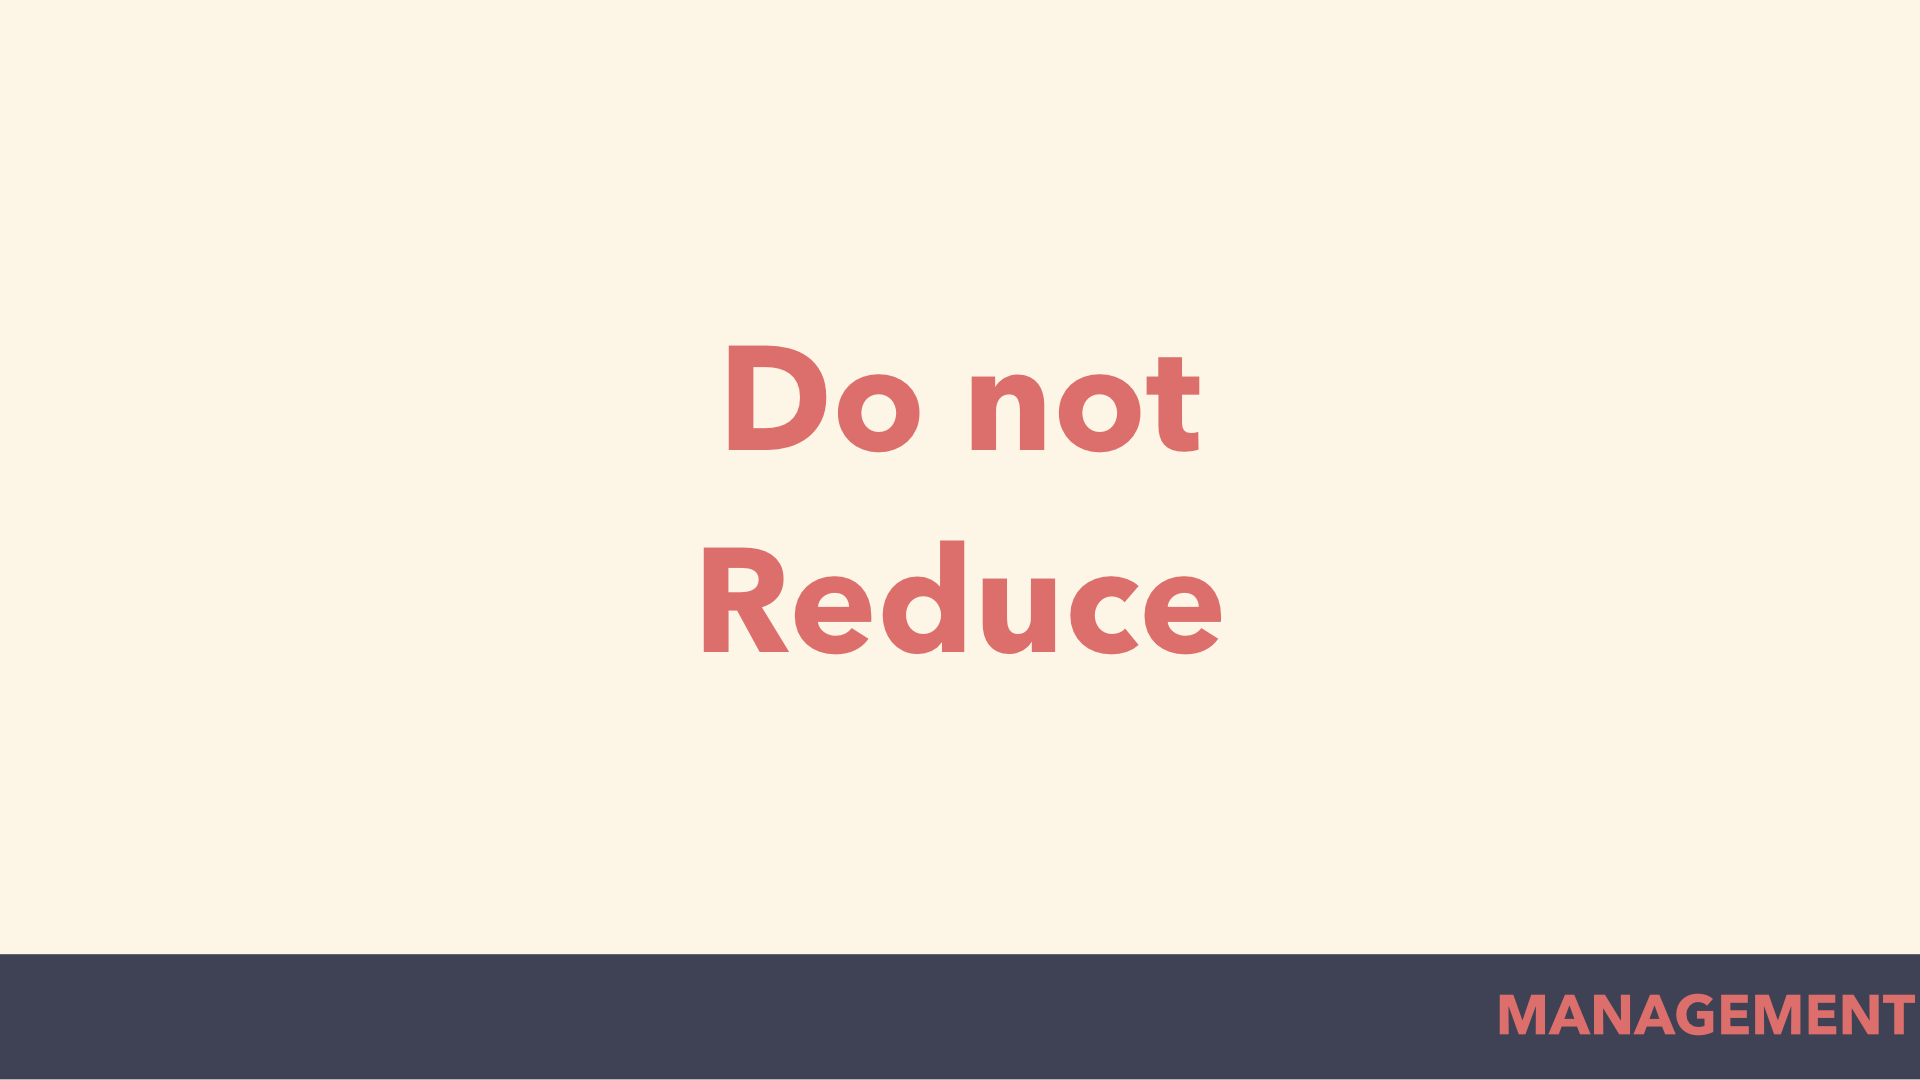 do not reduce